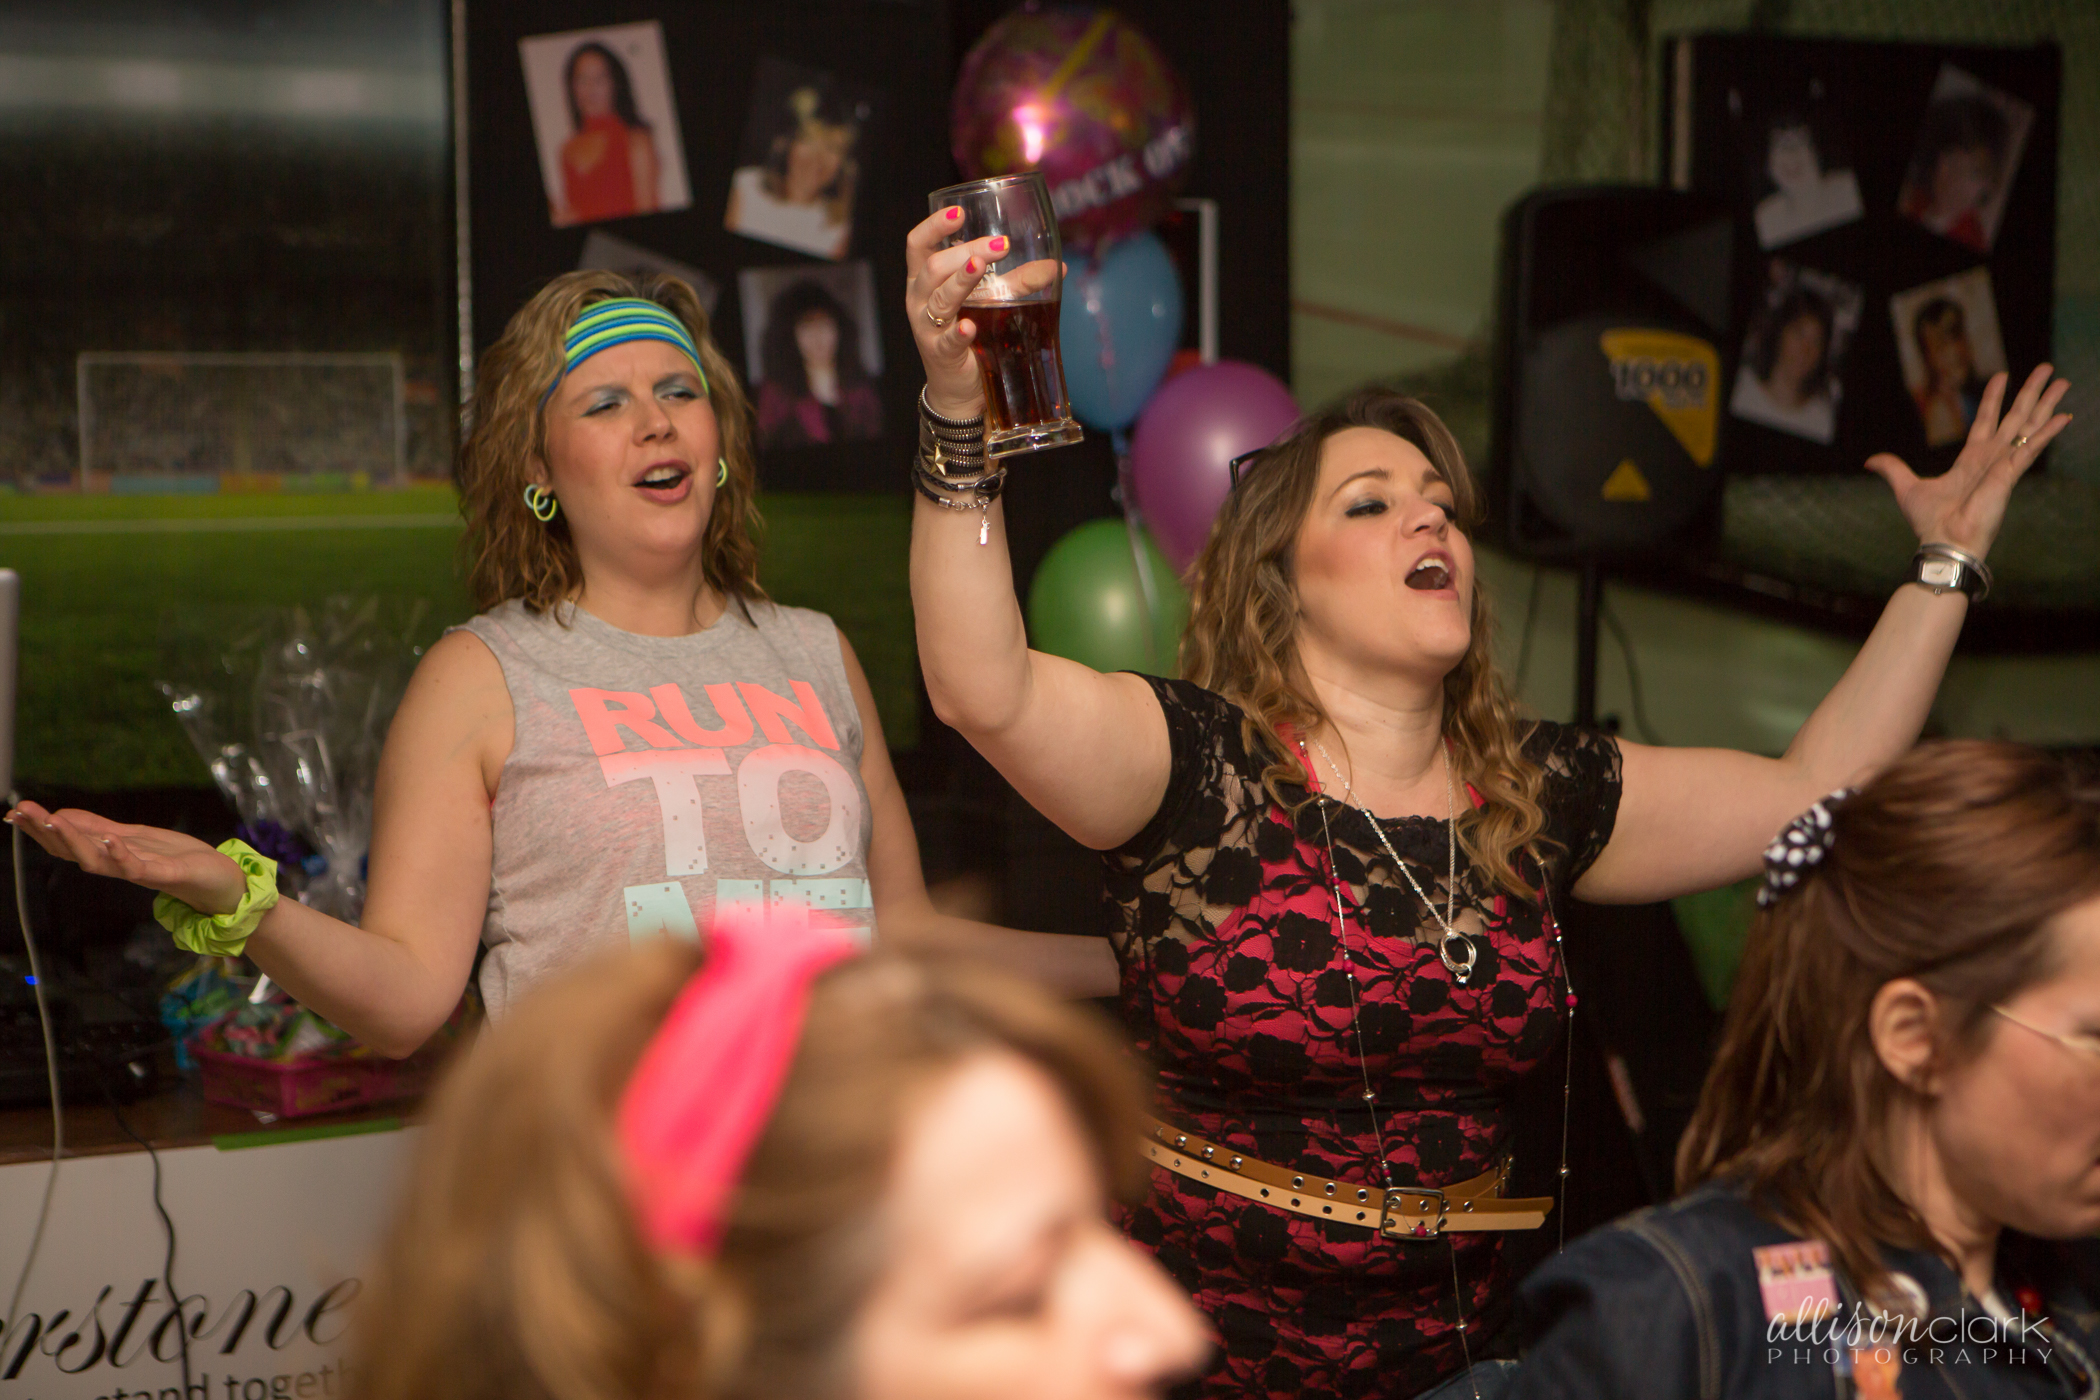 Cornerstone80s2015-Allison Clark Photography-178